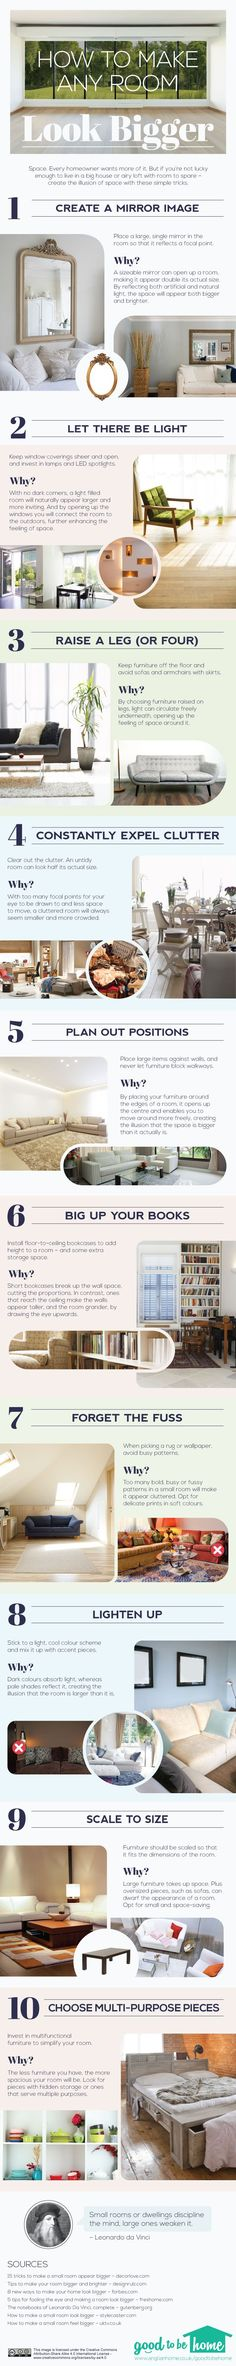 Space. Every homeowner wants more of it. But if you can't upsize, these steps show you how to make a room look bigger.   http://www.anglianhome.co.uk/goodtobehome/